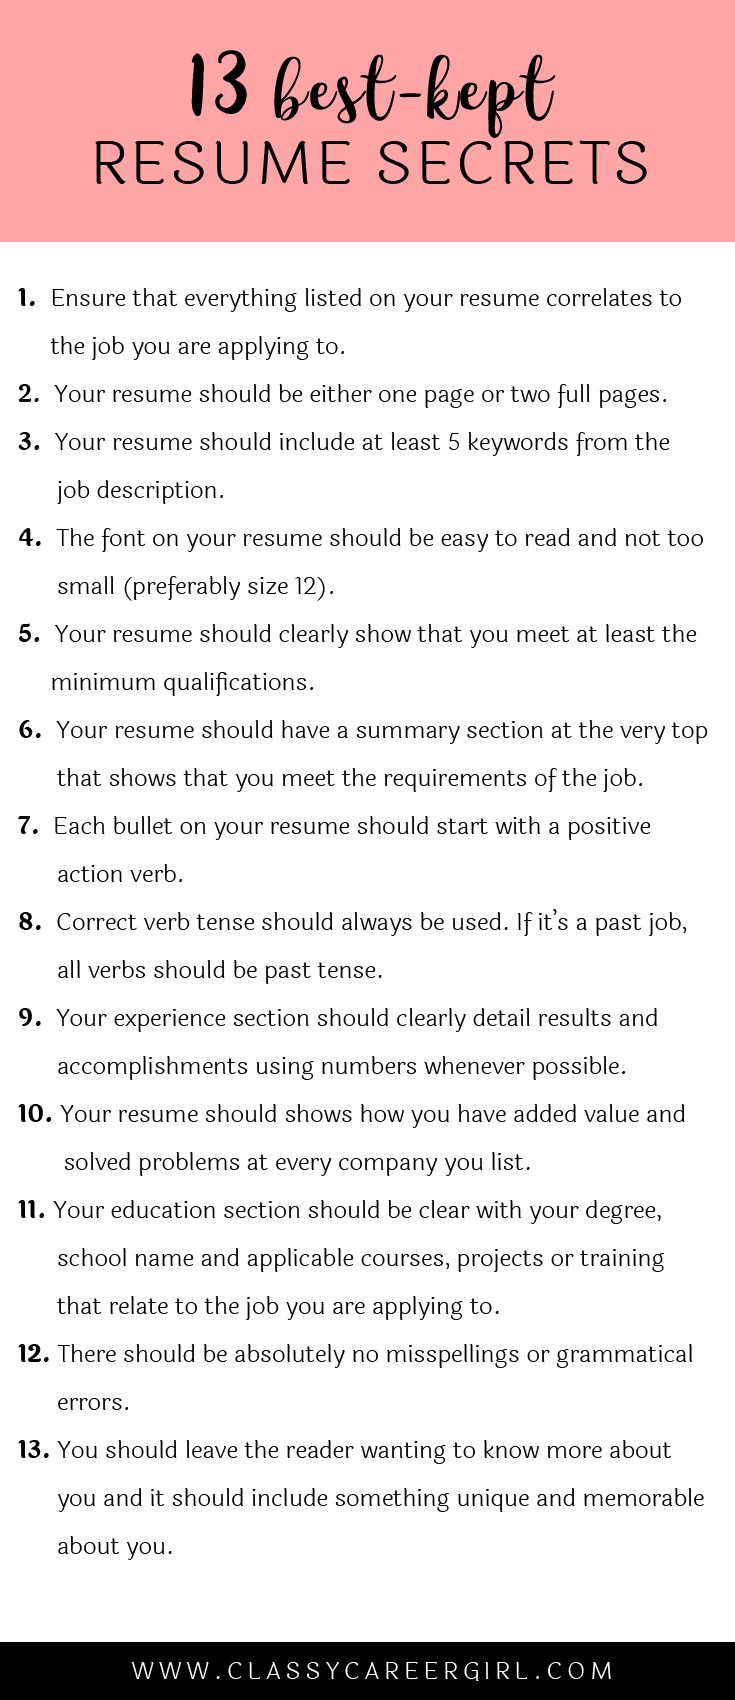 Opposenewapstandardsus  Picturesque  Ideas About Resume On Pinterest  Cv Format Resume Cv And  With Fetching Some Hiring Managers Will Toss Your Resume Out If You Dont Know These  With Archaic Professional Resume Writers Cost Also Good Skills To Have On Resume In Addition Wedding Planner Resume And Sample Resumes For Customer Service As Well As It Consultant Resume Additionally No Experience Resume Template From Pinterestcom With Opposenewapstandardsus  Fetching  Ideas About Resume On Pinterest  Cv Format Resume Cv And  With Archaic Some Hiring Managers Will Toss Your Resume Out If You Dont Know These  And Picturesque Professional Resume Writers Cost Also Good Skills To Have On Resume In Addition Wedding Planner Resume From Pinterestcom